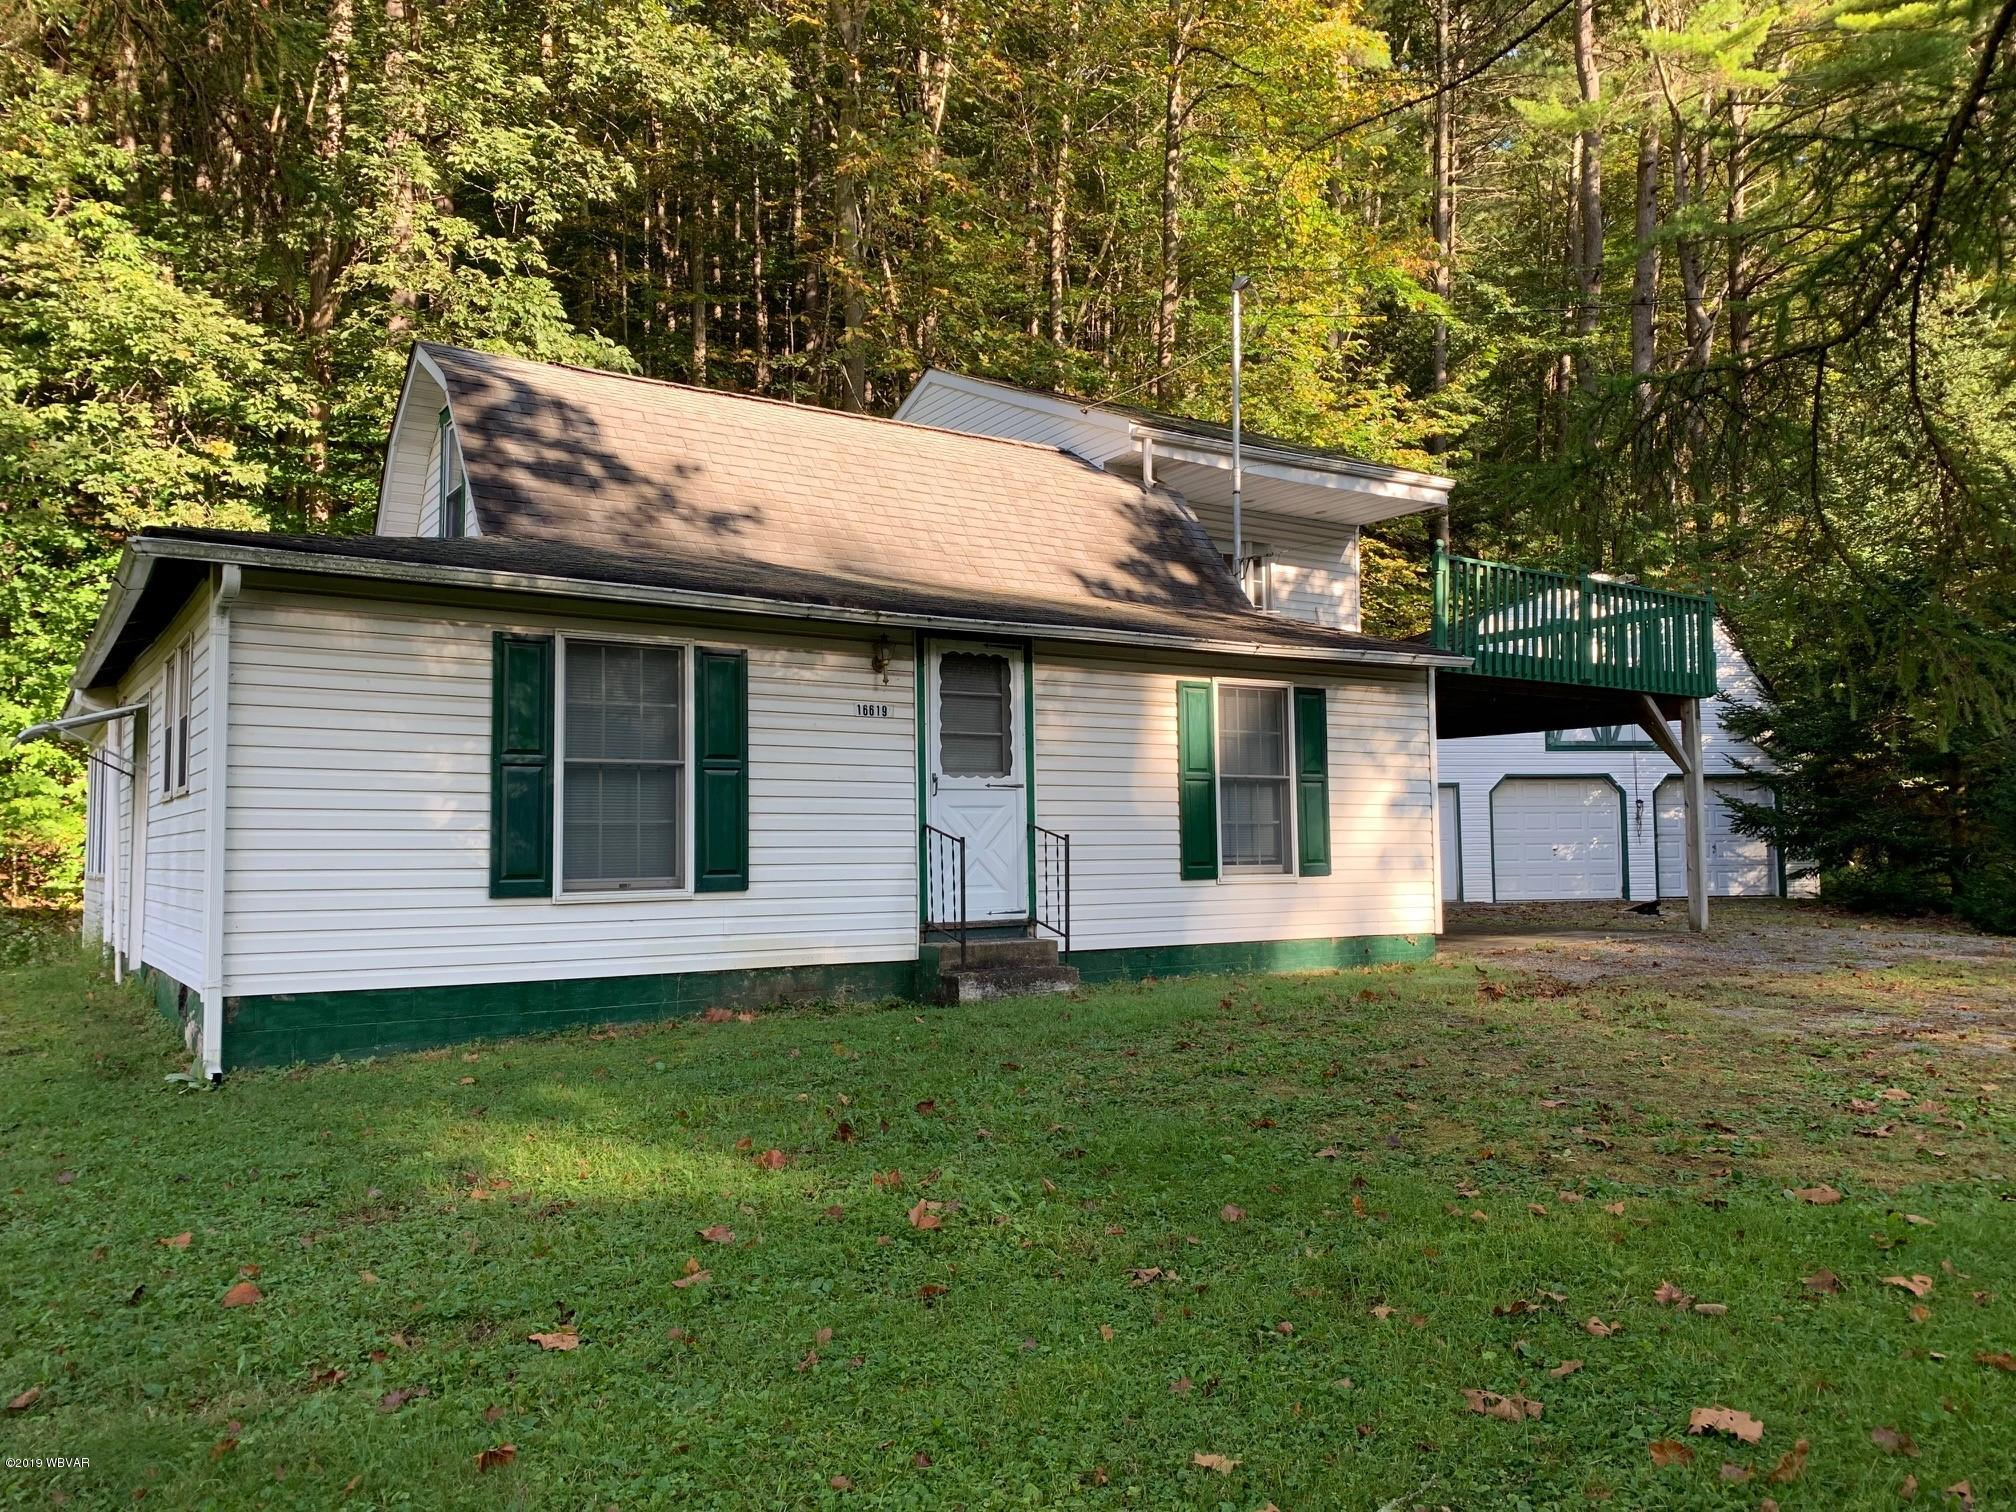 16619 PA-287 ROUTE,Waterville,PA 17776,3 Bedrooms Bedrooms,1 BathroomBathrooms,Cabin/vacation home,PA-287,WB-88581